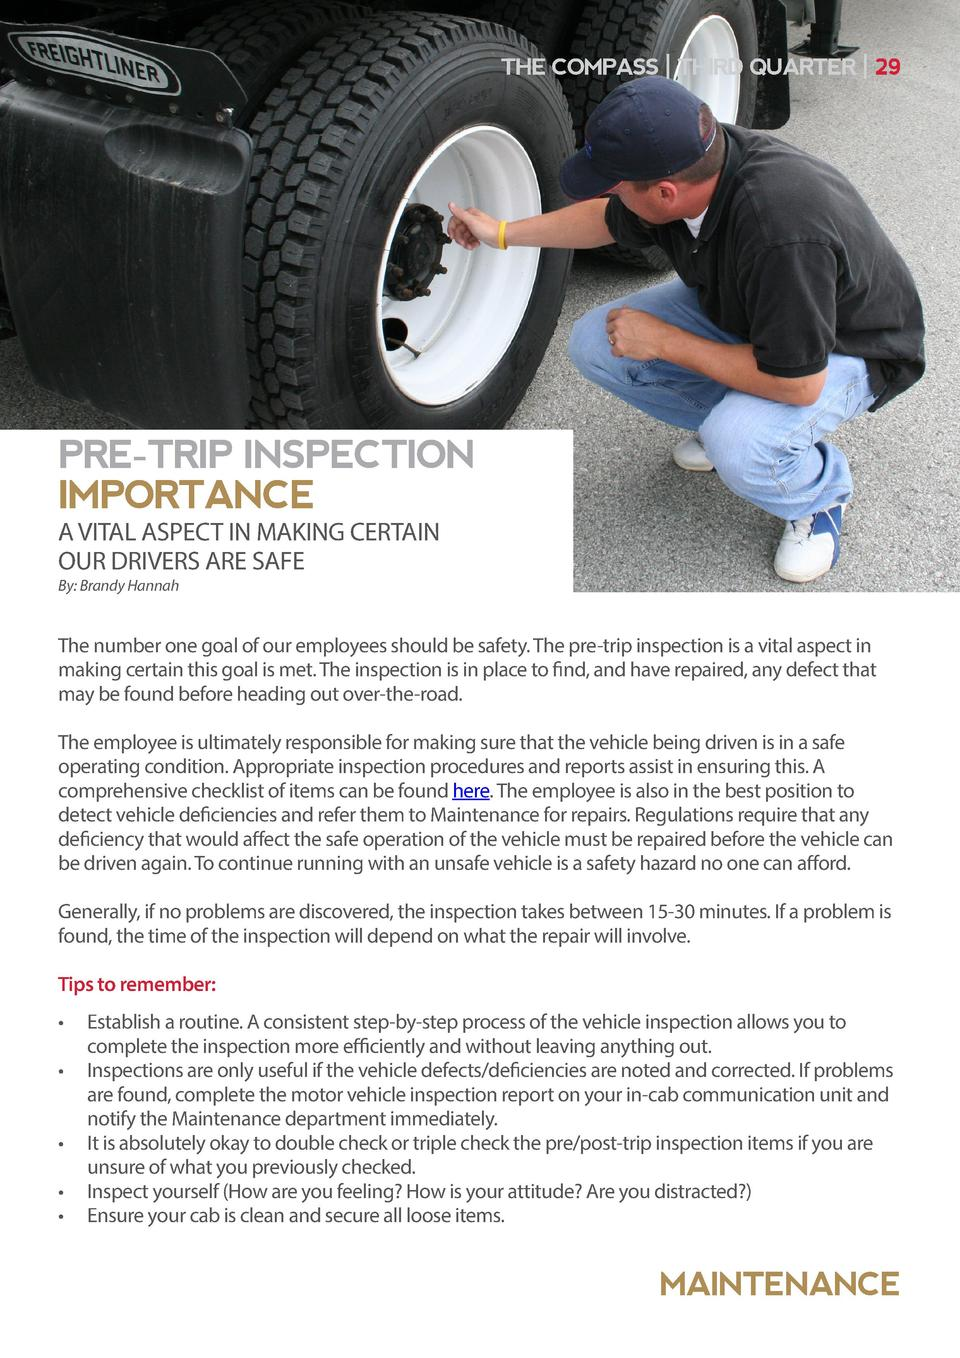 THE COMPASS   THIRD QUARTER   29  PRE-TRIP INSPECTION IMPORTANCE A VITAL ASPECT IN MAKING CERTAIN OUR DRIVERS ARE SAFE By ...